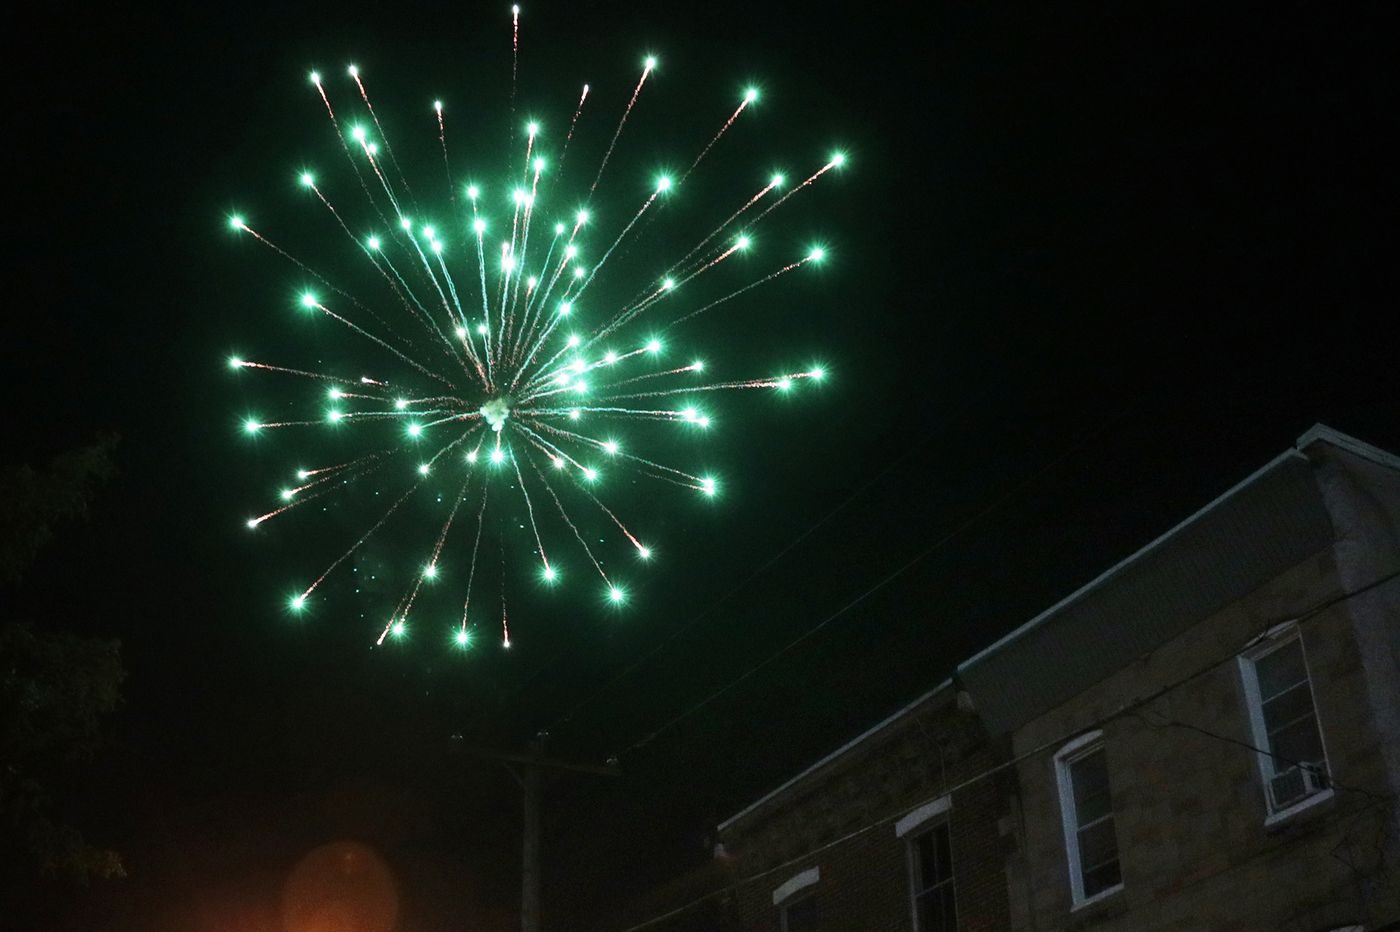 After weeks of nightly fireworks, it's time to tighten Pa.'s laws | Opinion